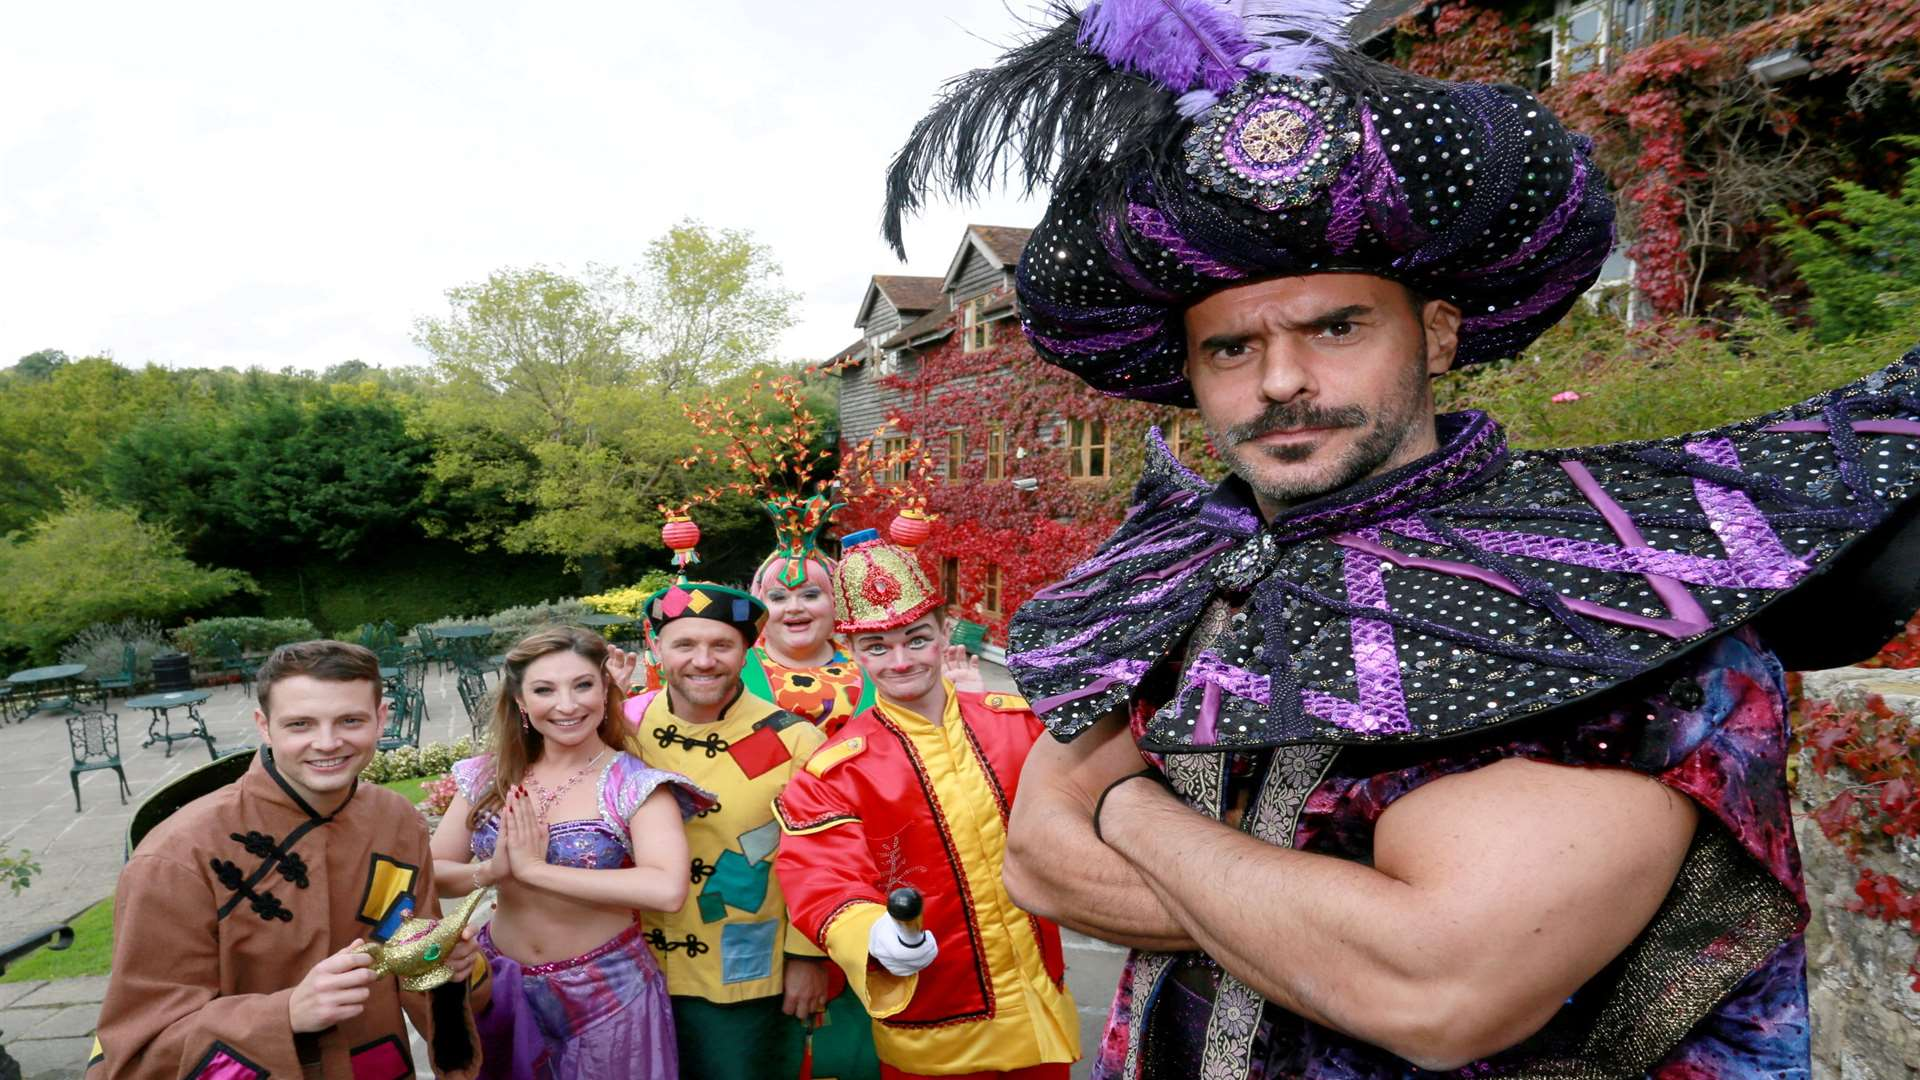 The cast of this year's panto Aladdin at the Assembly Halls in Tunbridge Wells, starring Michael Greco, right